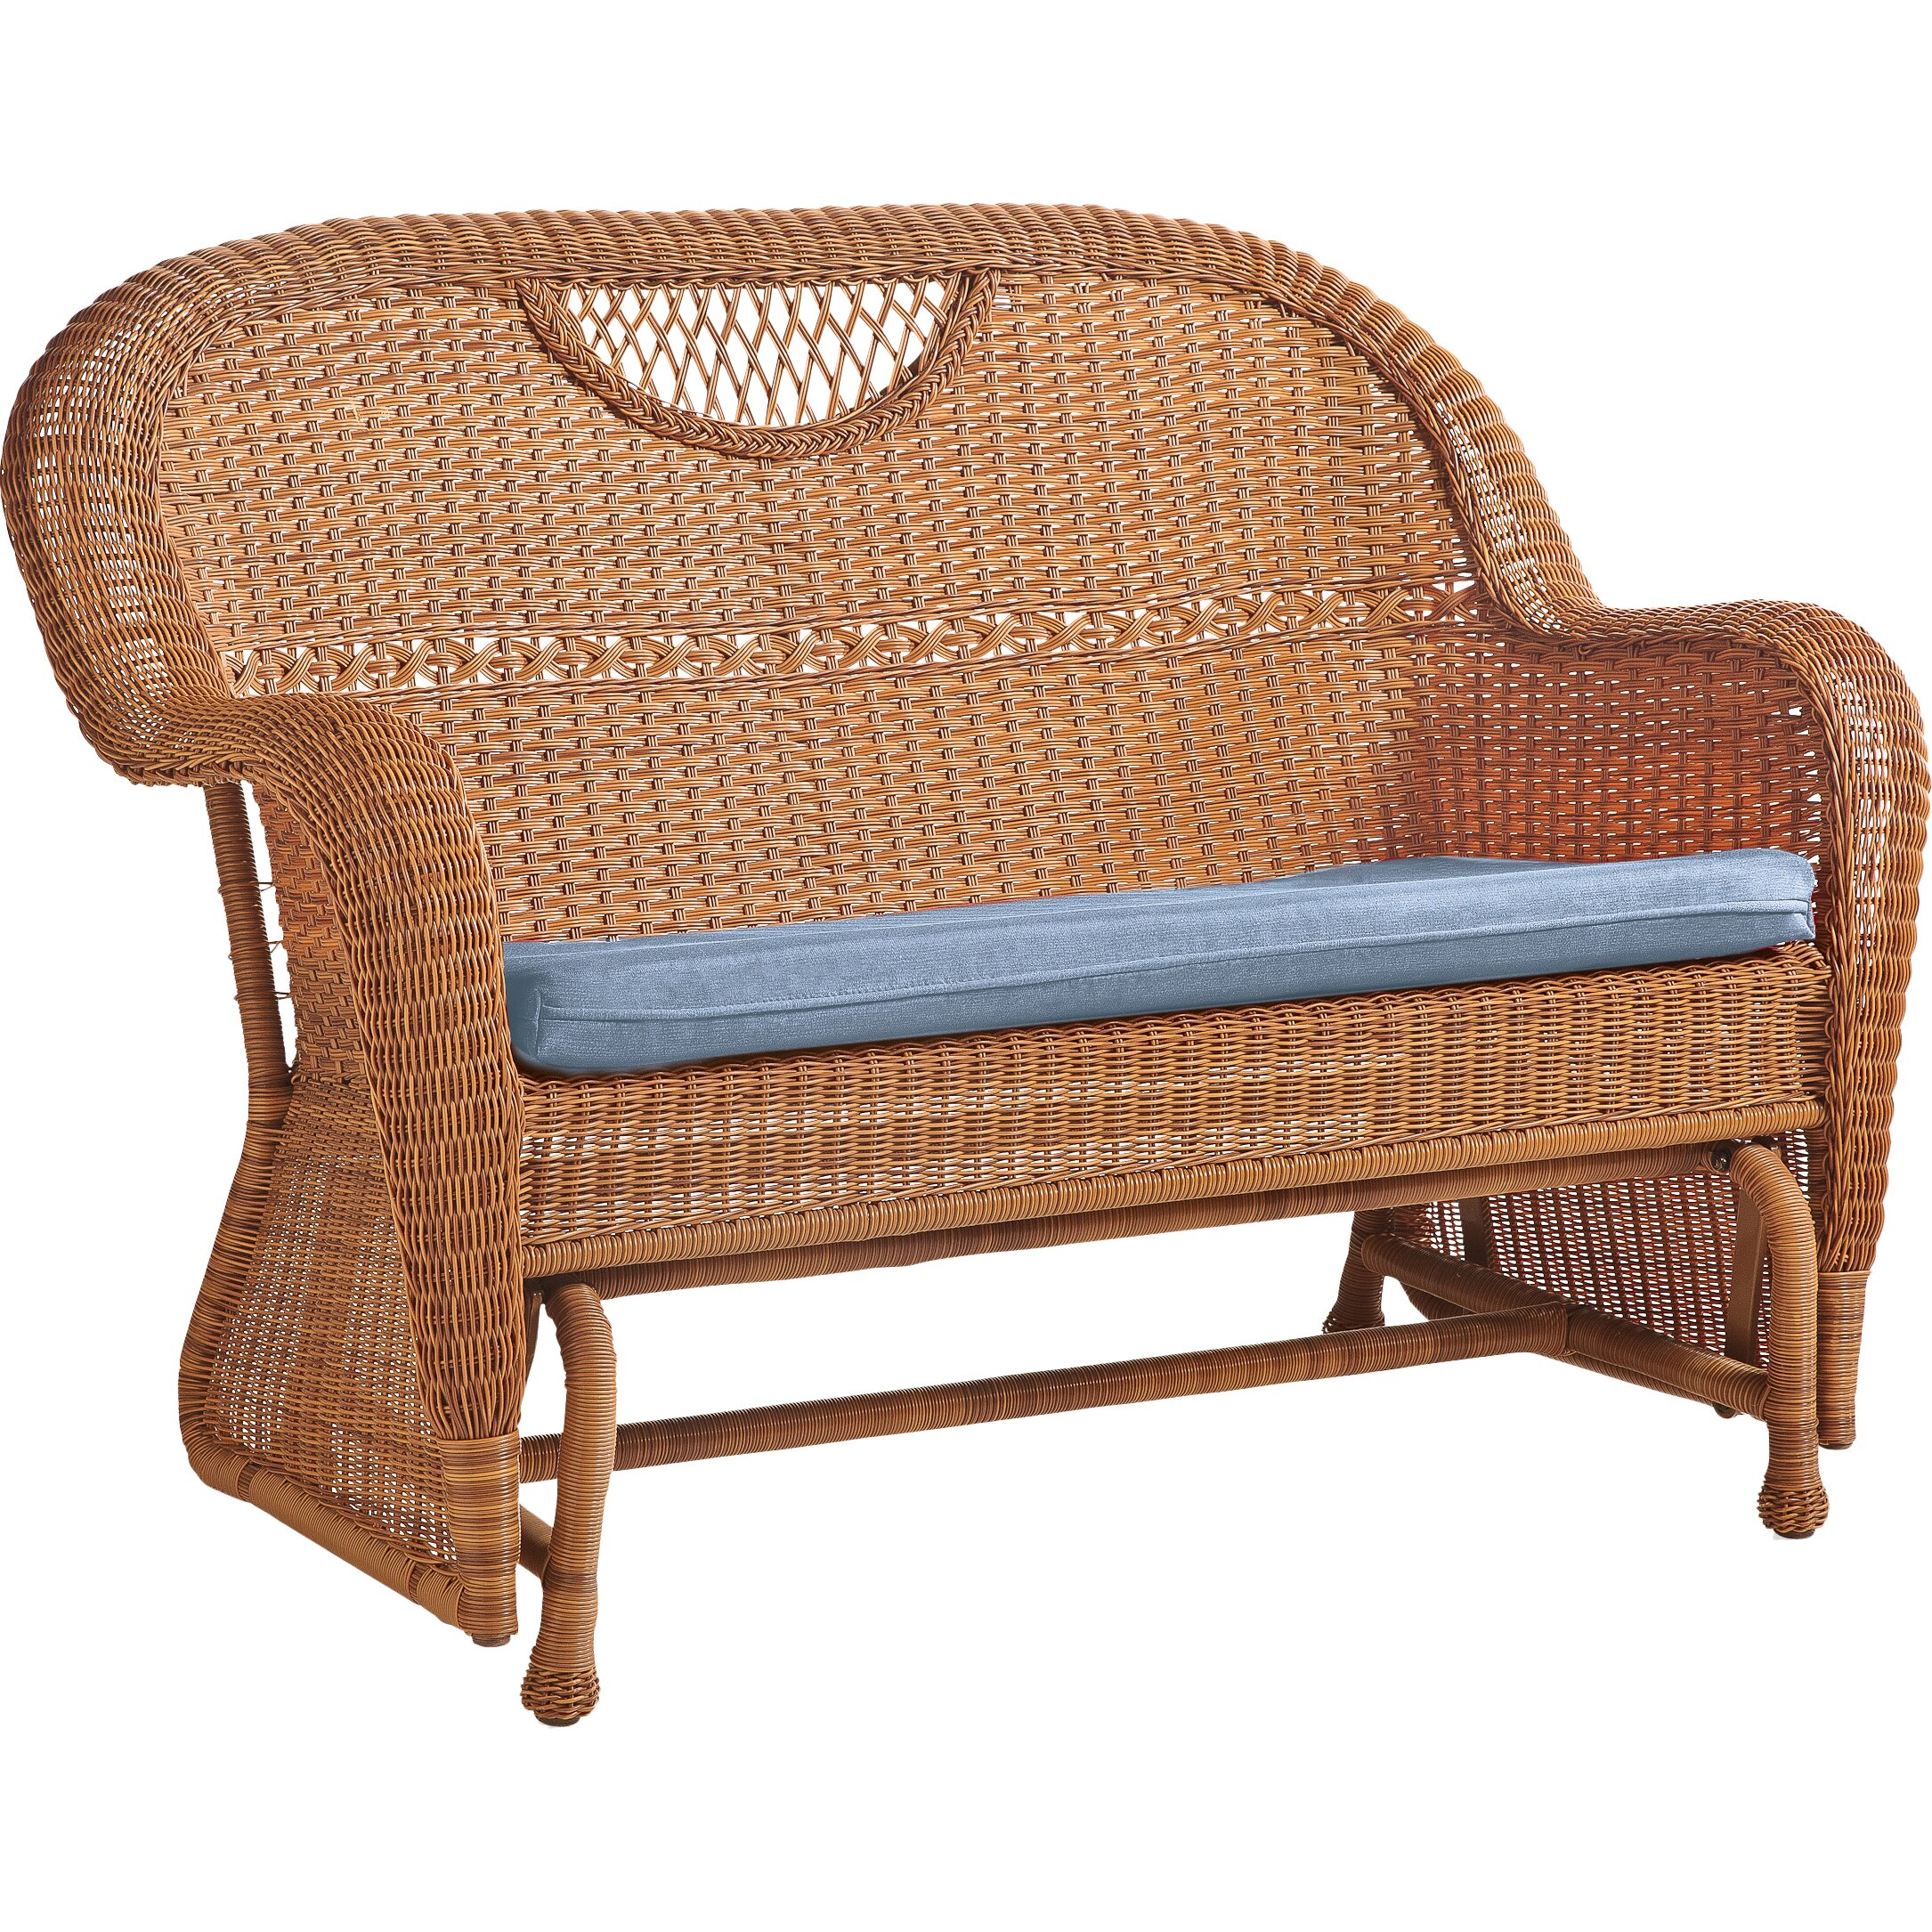 Hearth Bench: Plow & Hearth Prospect Hill Outdoor Resin Wicker Love Seat